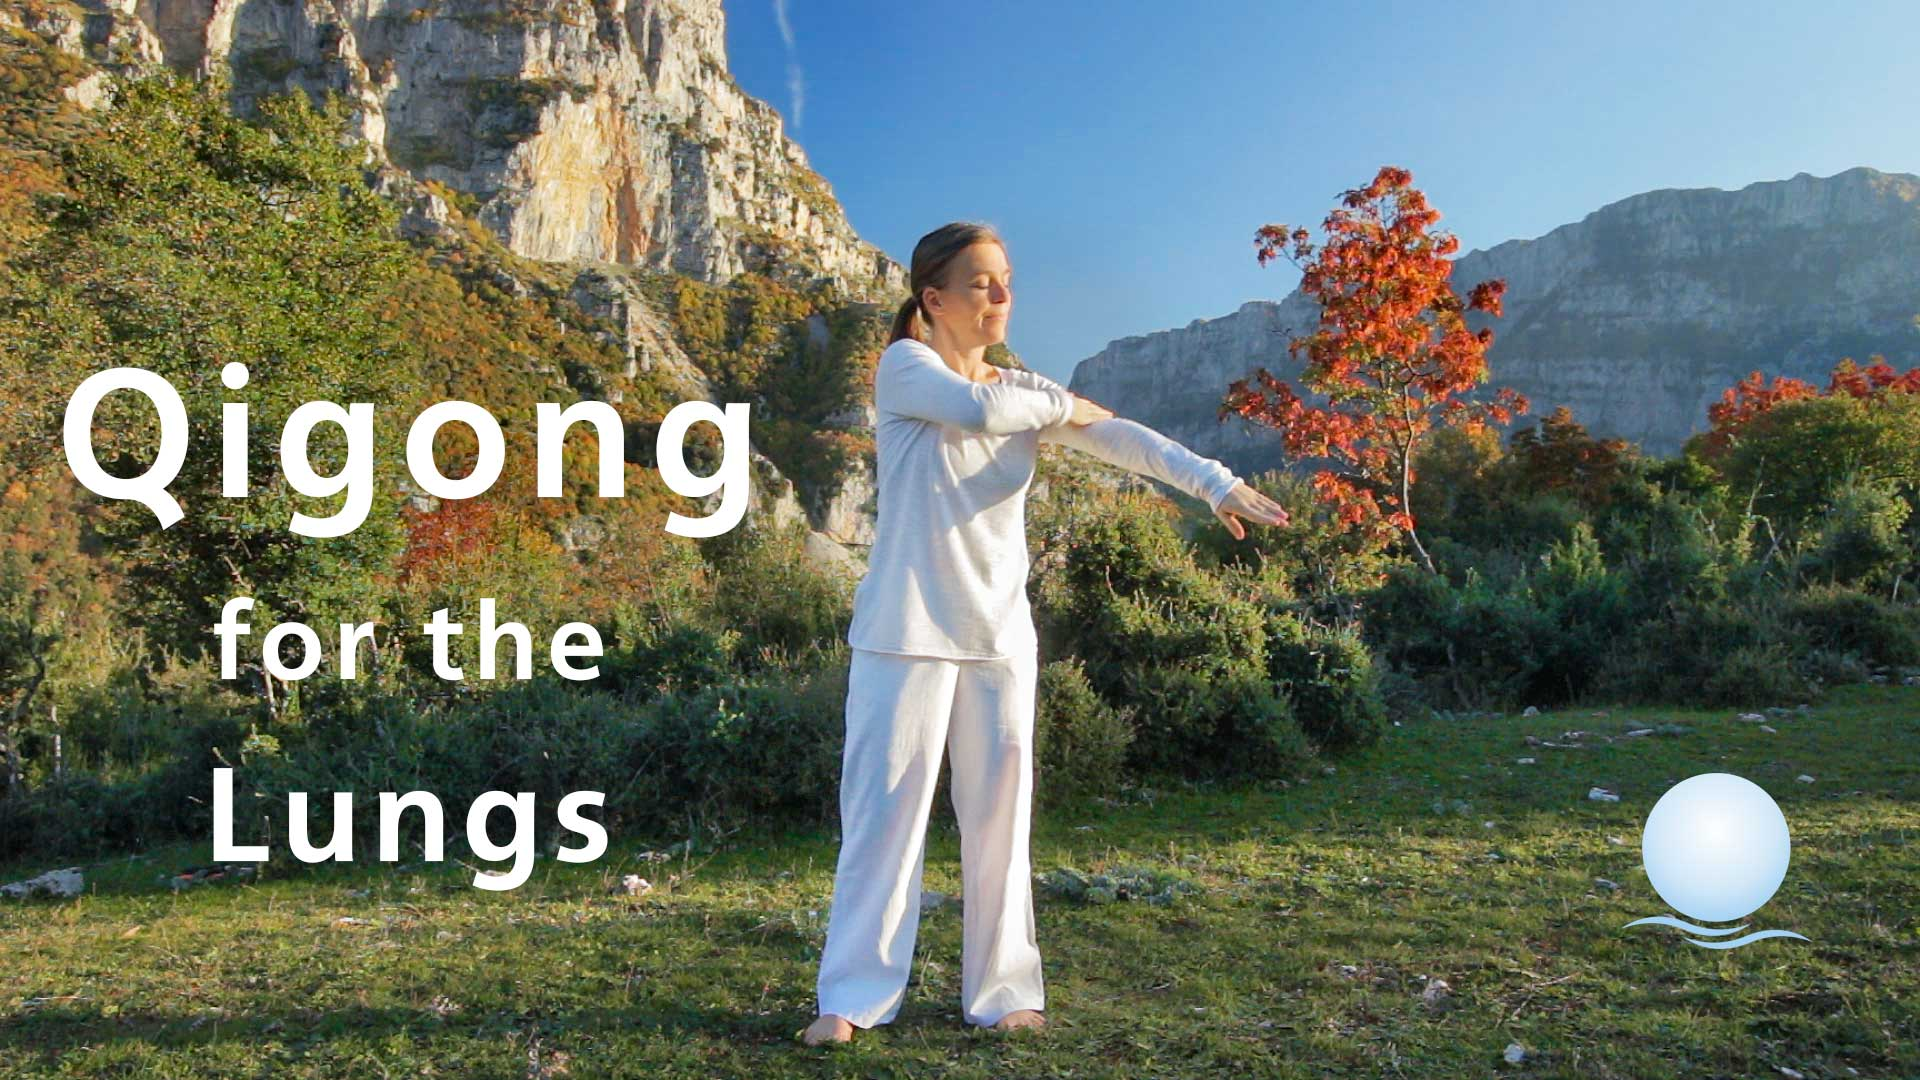 Qigong for the lungs